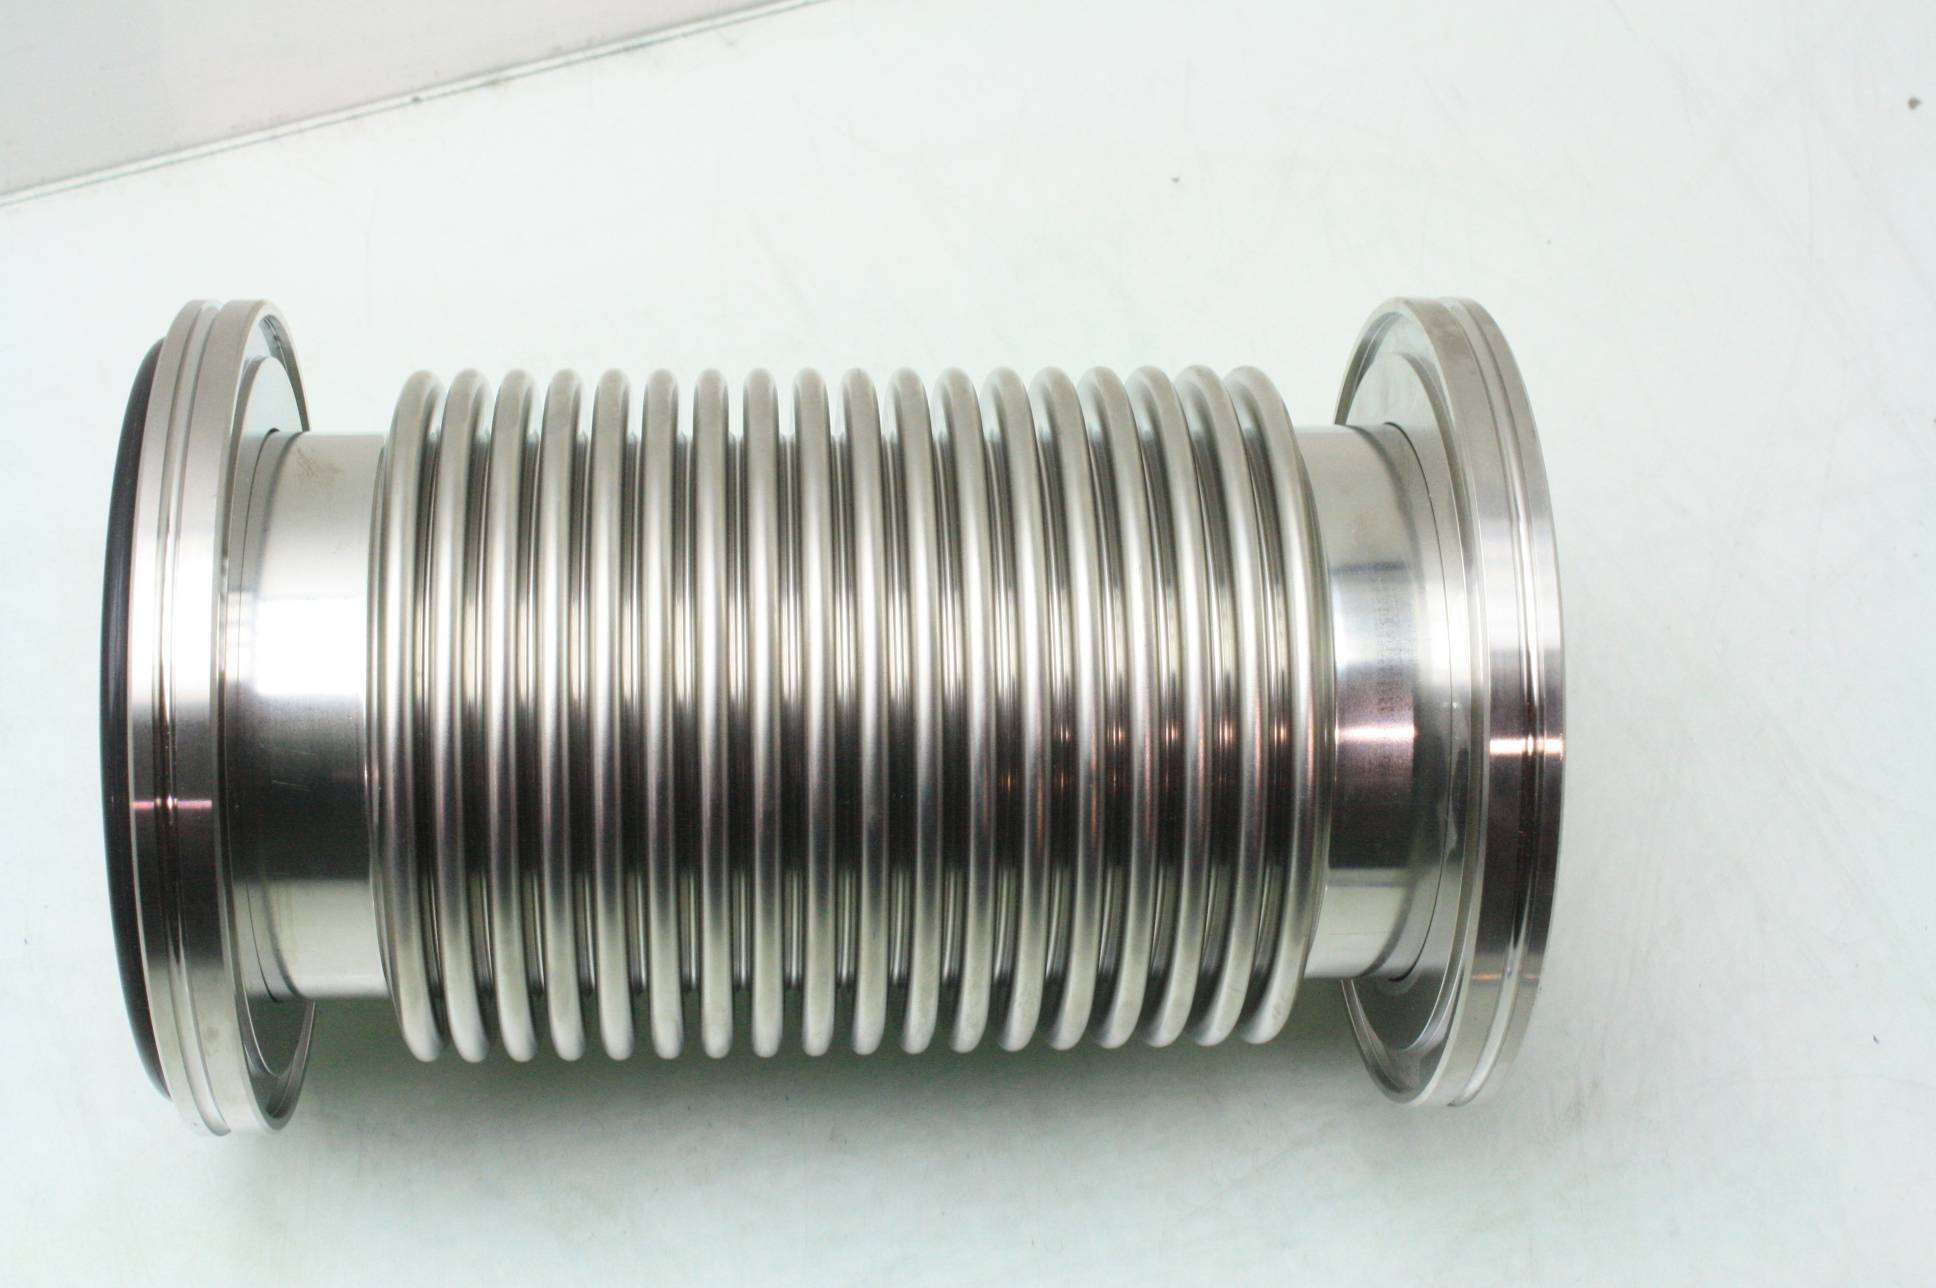 Mks stainless steel high vacuum bellows tubing iso dn